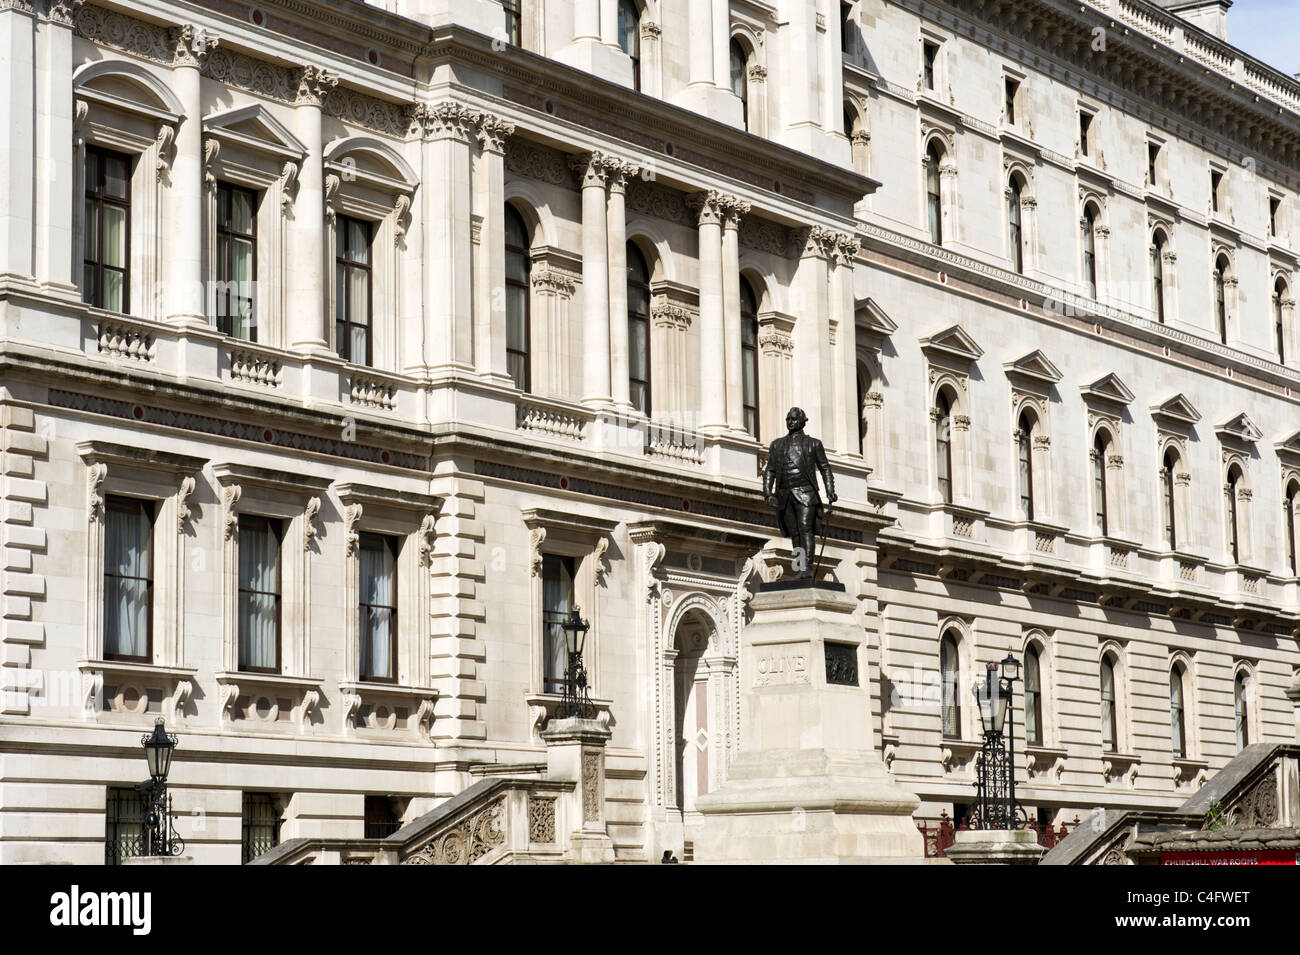 The Foreign and Commonwealth Office, London, UK - Stock Image